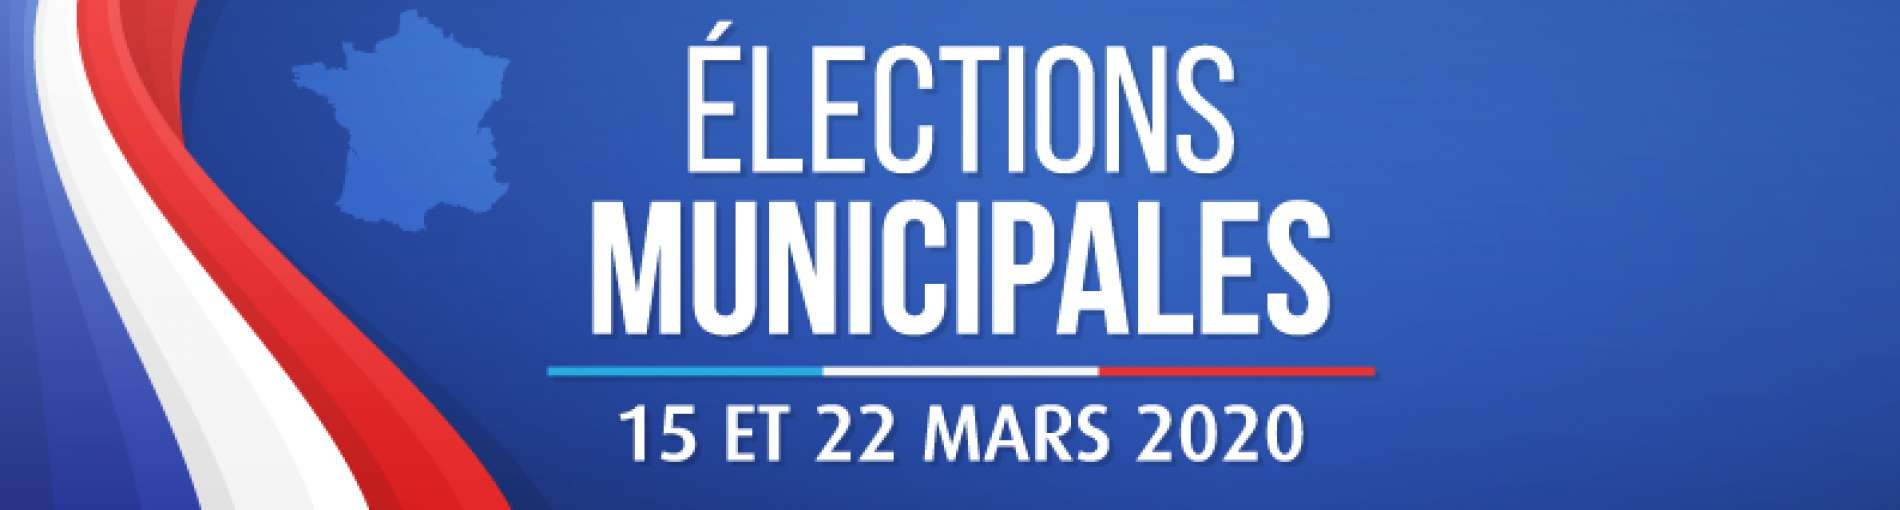 01-elections-municipales-2020.JPG